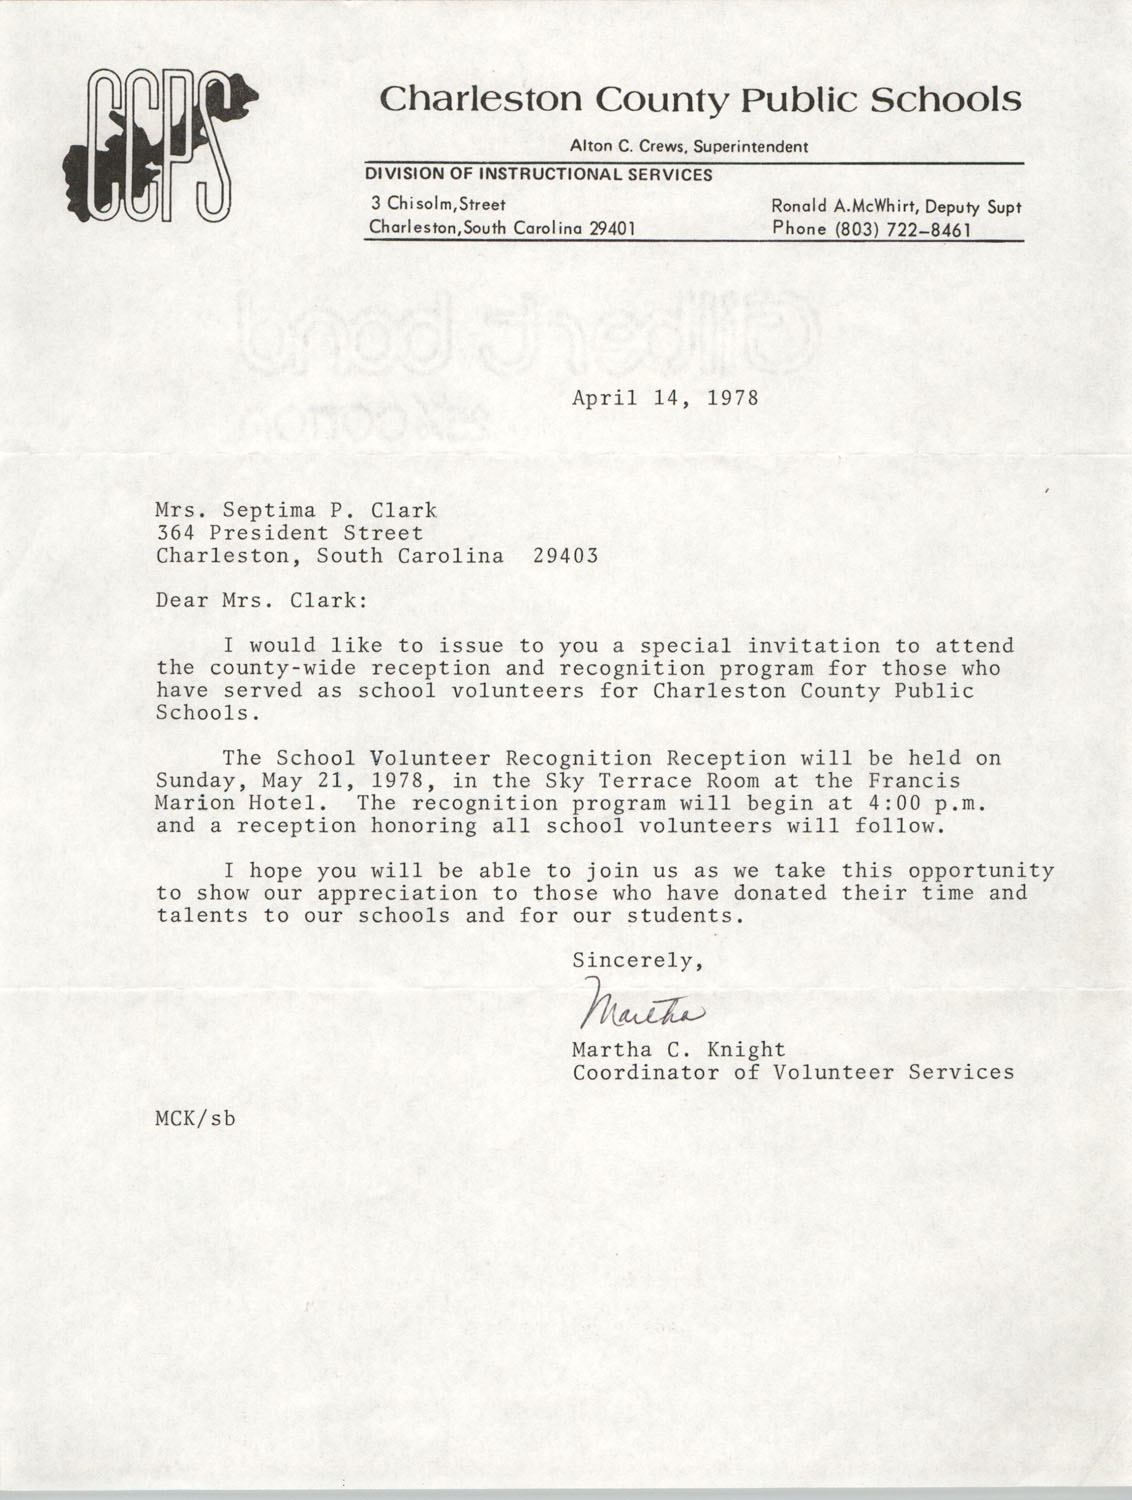 Letter from Martha C. Knight to Septima P. Clark, April 14, 1978